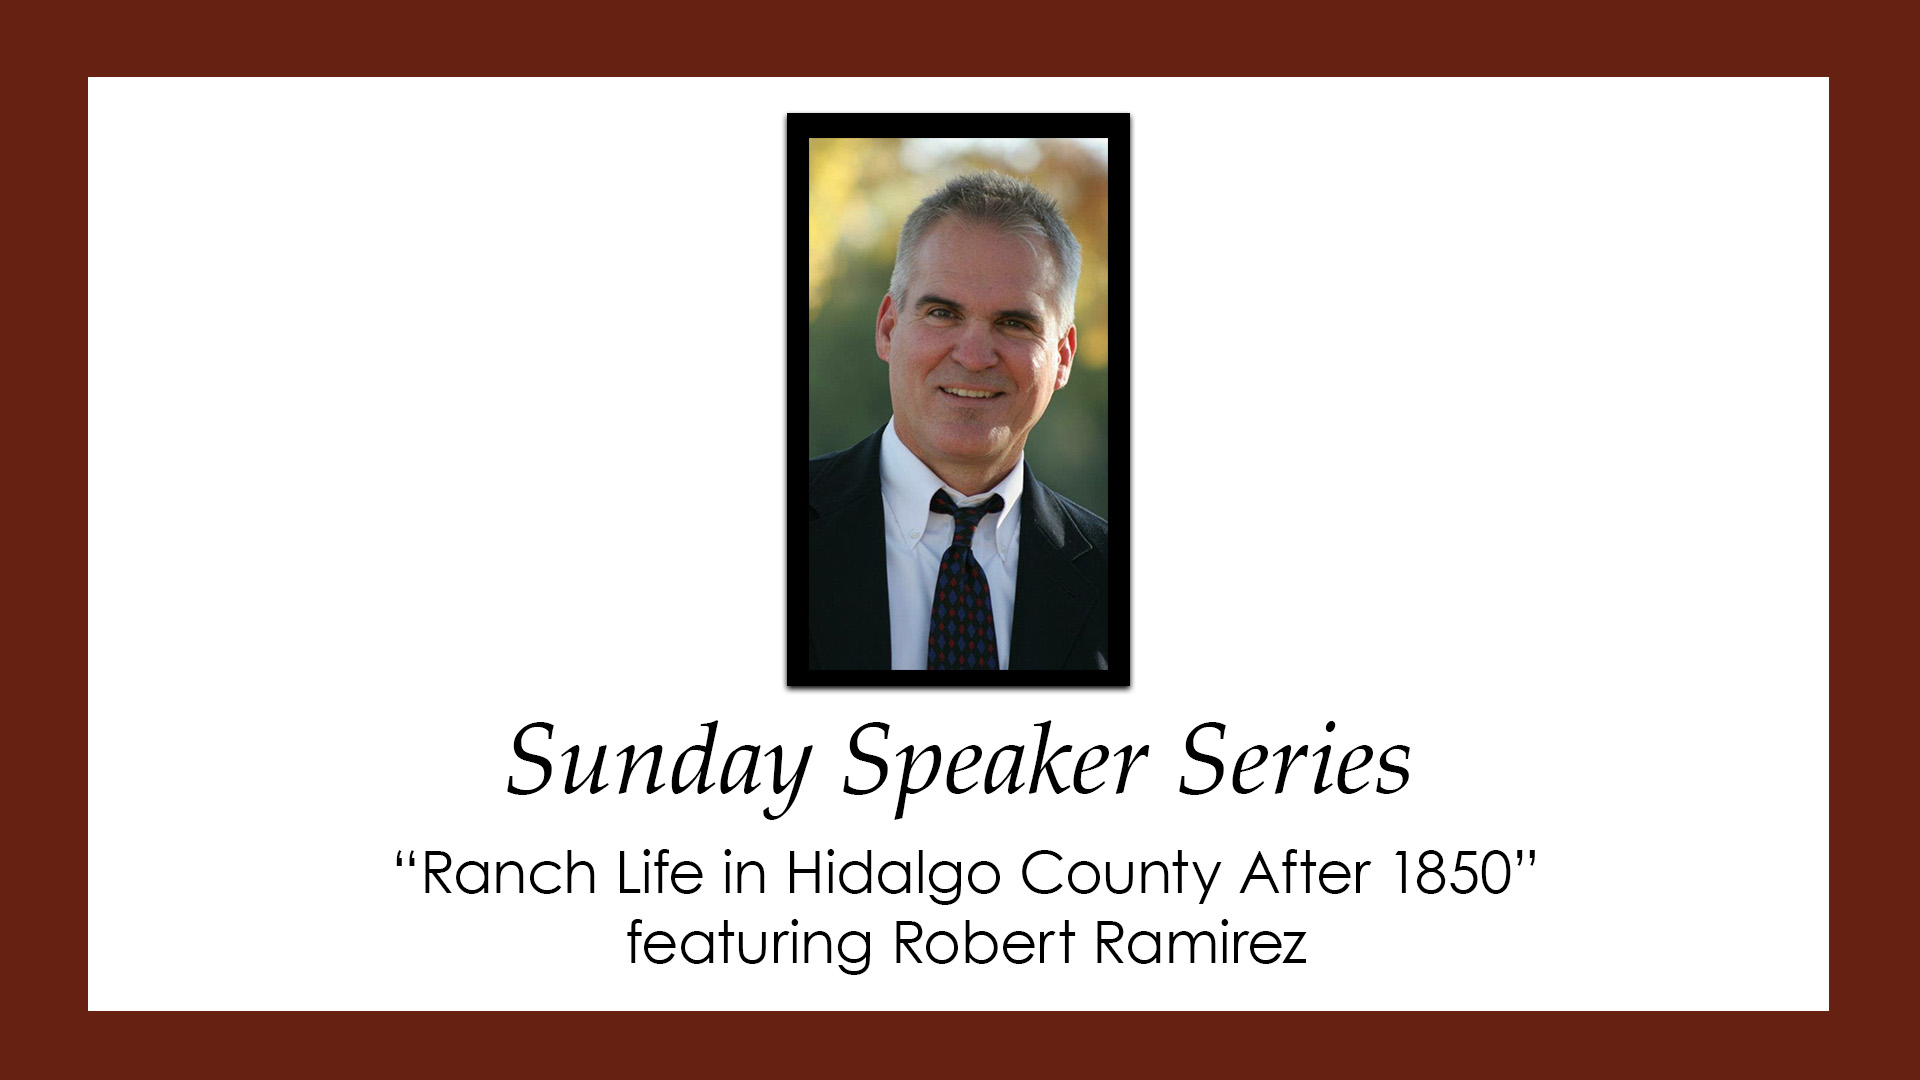 The Book Ranch Life In Hidalgo County After 1850 Is Compiled Of Oral Histories Conducted By Emilia Schunior Ramirez A Well Known Teacher